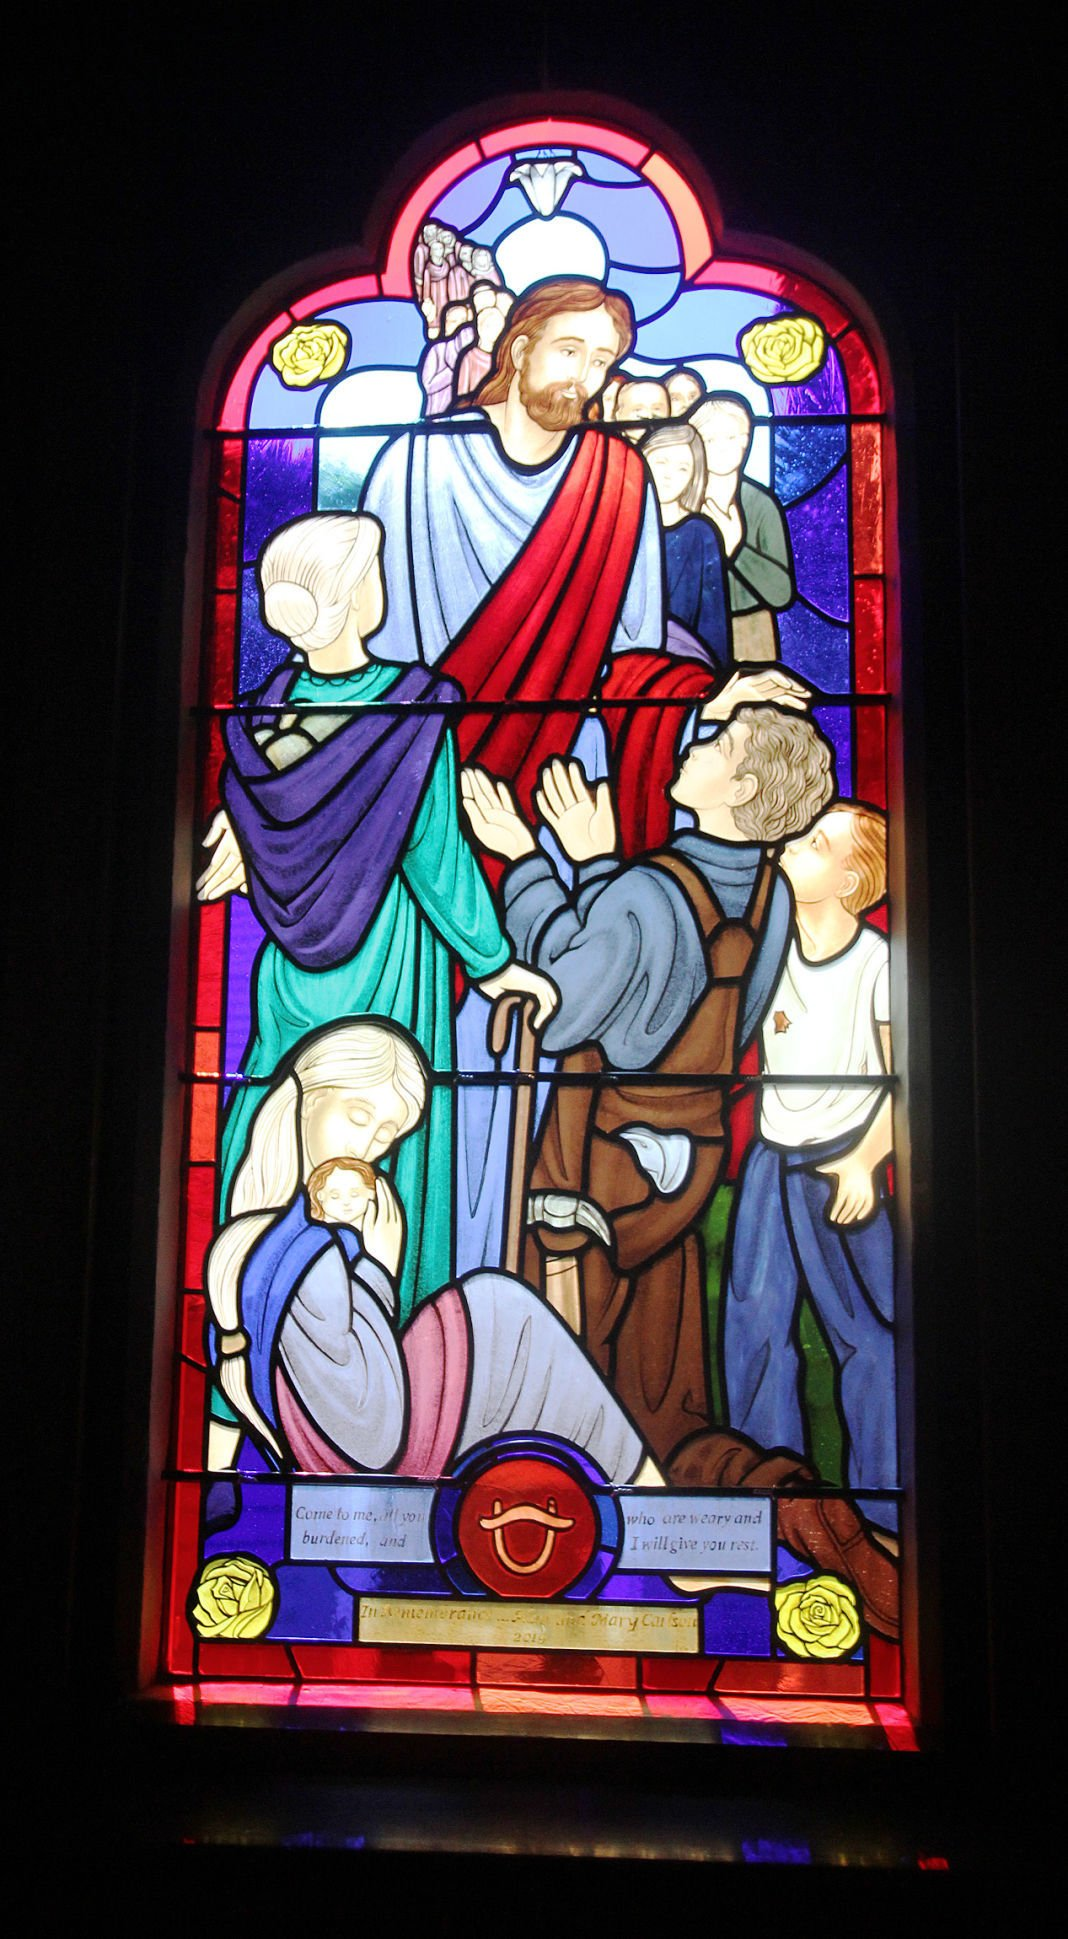 St. John's Church Celebrates New Cross And New Stained Glass Window